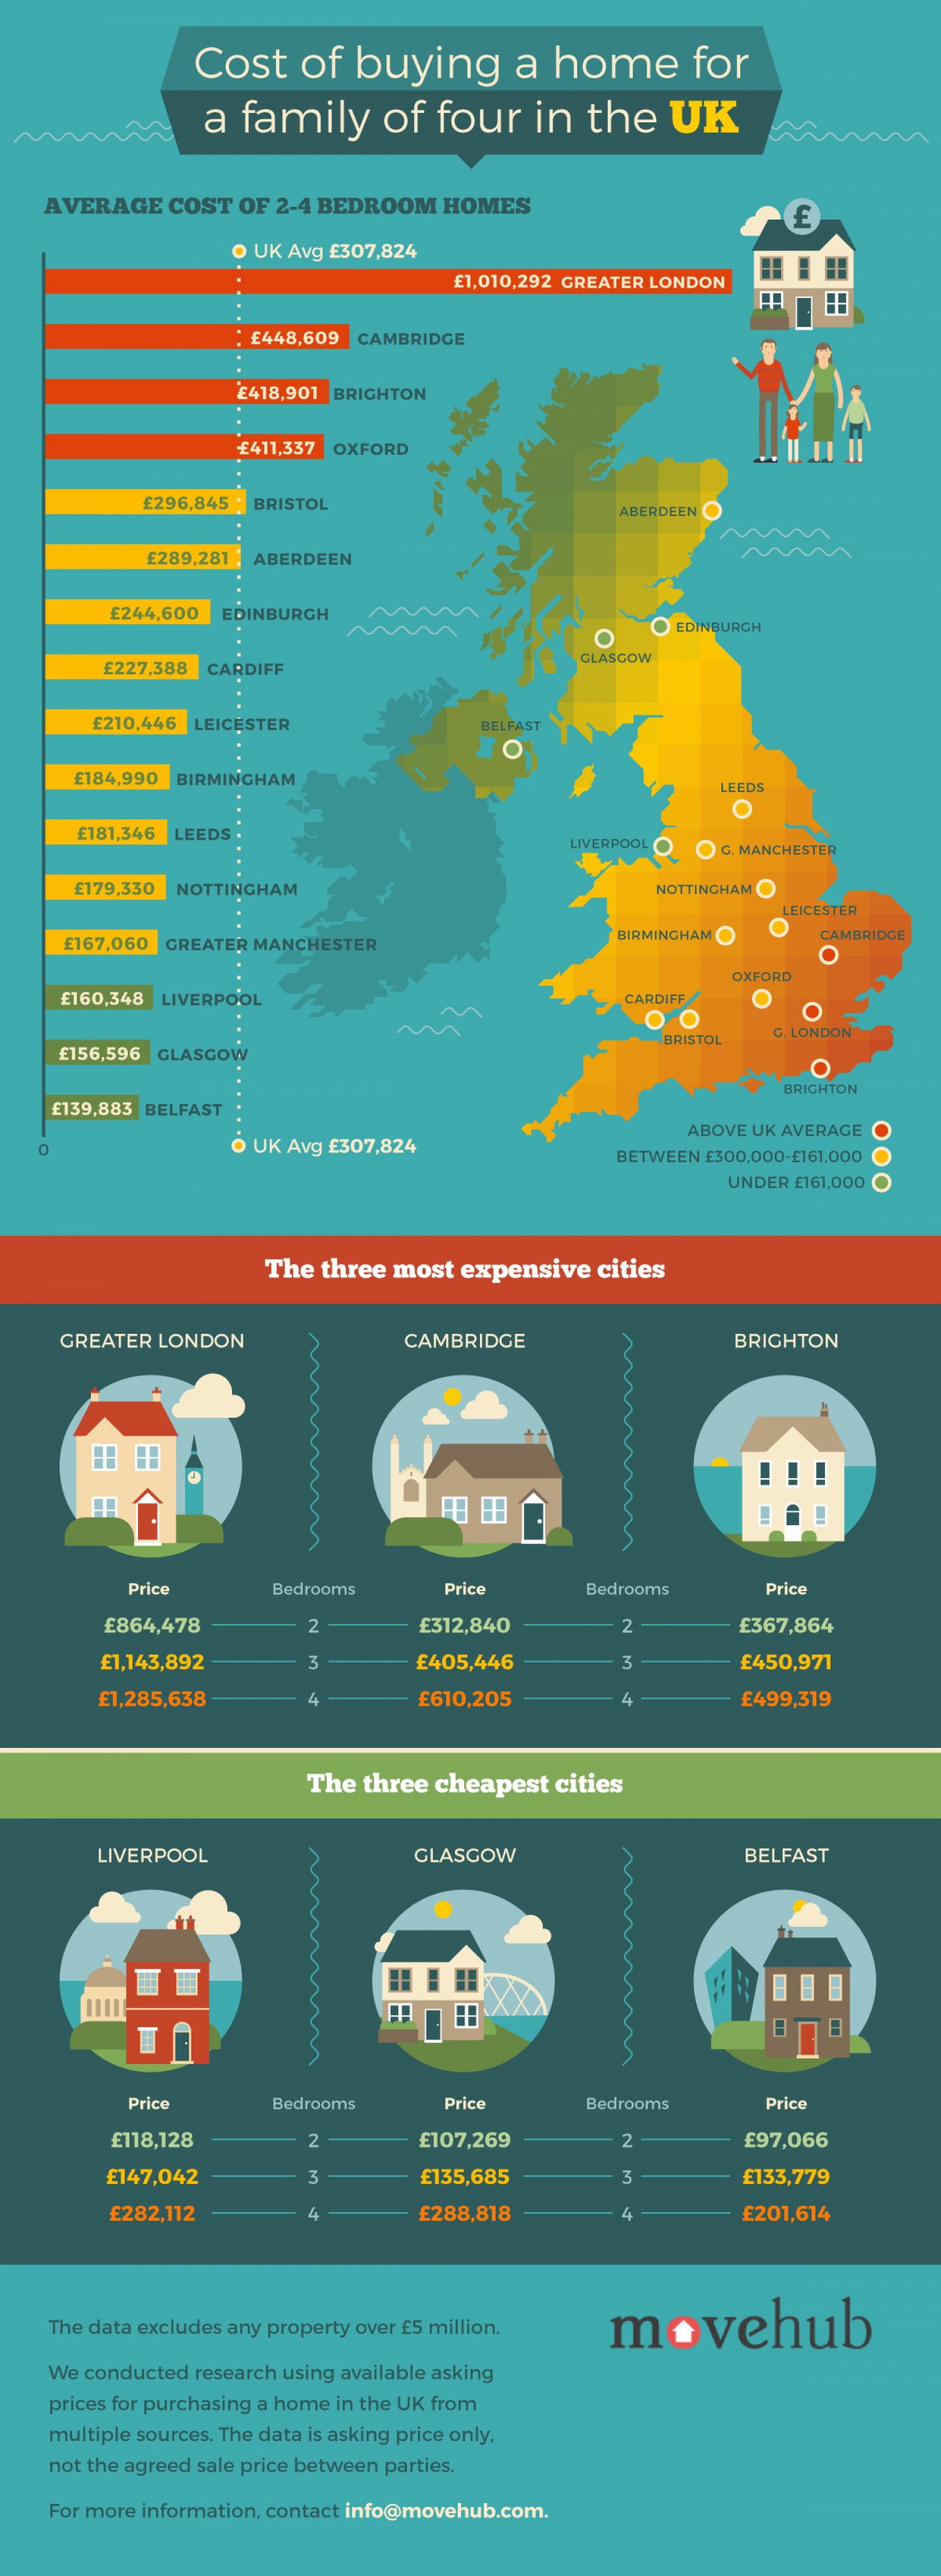 Cost of buying a family home in the UK Infographic